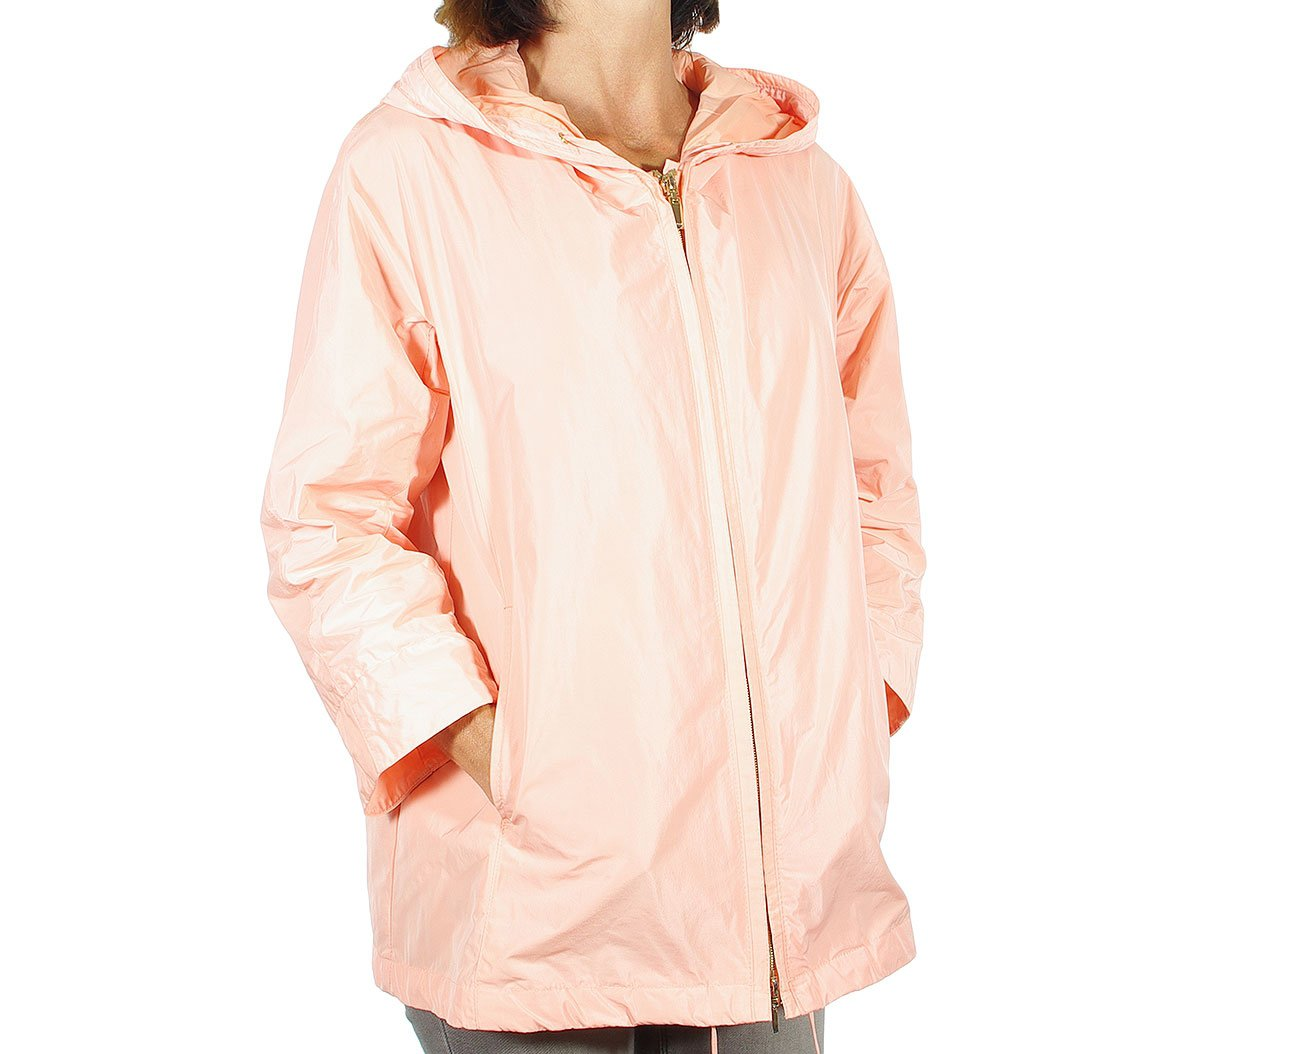 GEOX W8220Q kurtka woman jacket bright salmon